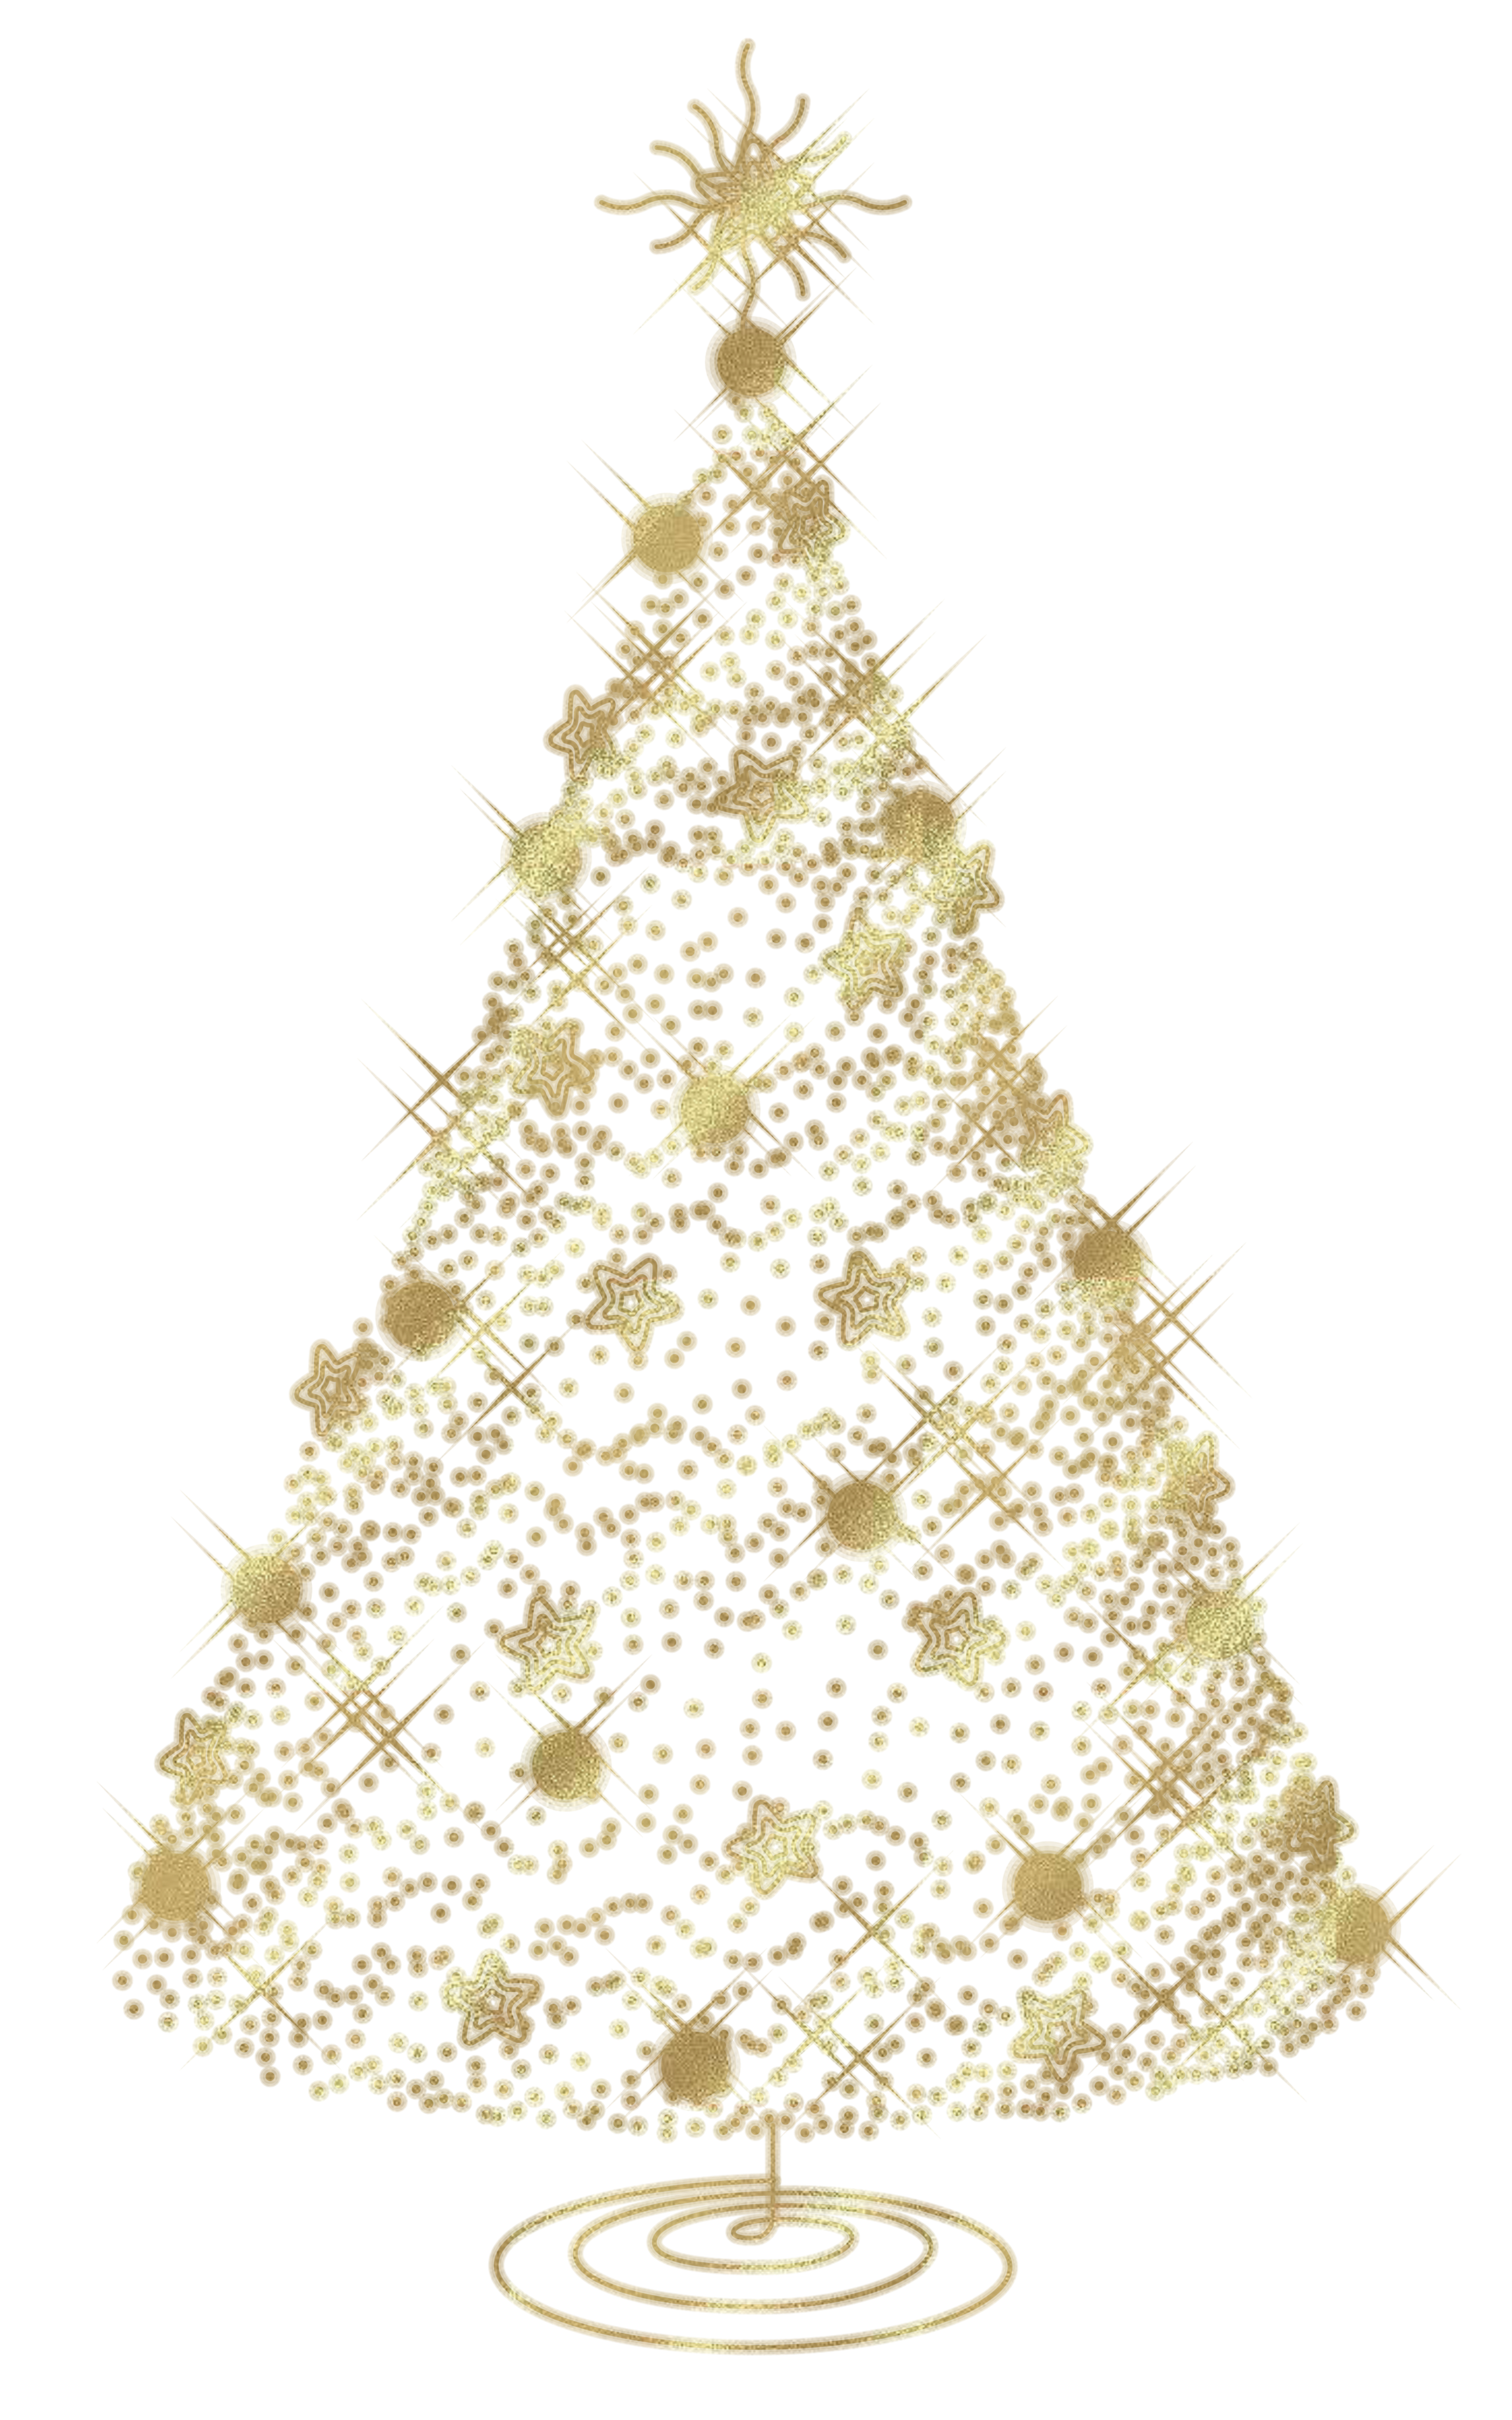 Christmas Tree Transparent Background.Christmas Tree Clip Art Transparent Background